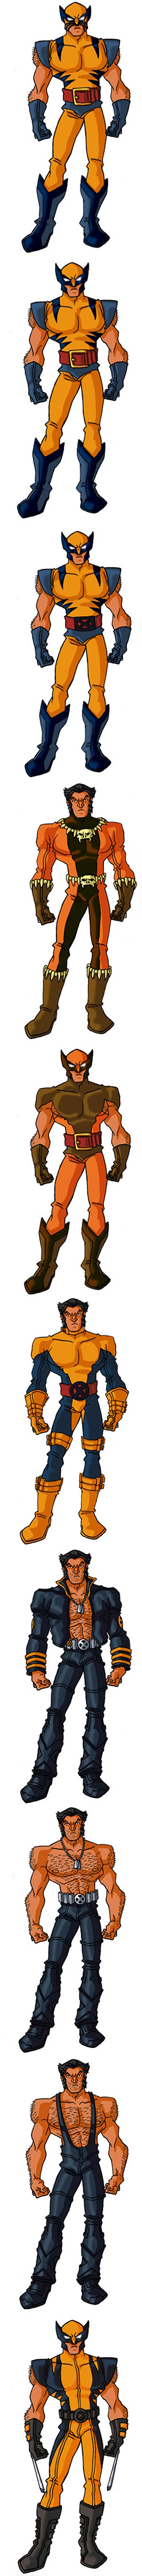 Wolverine (Marvel Comics) costumes gallery with RonnieThunderbolts